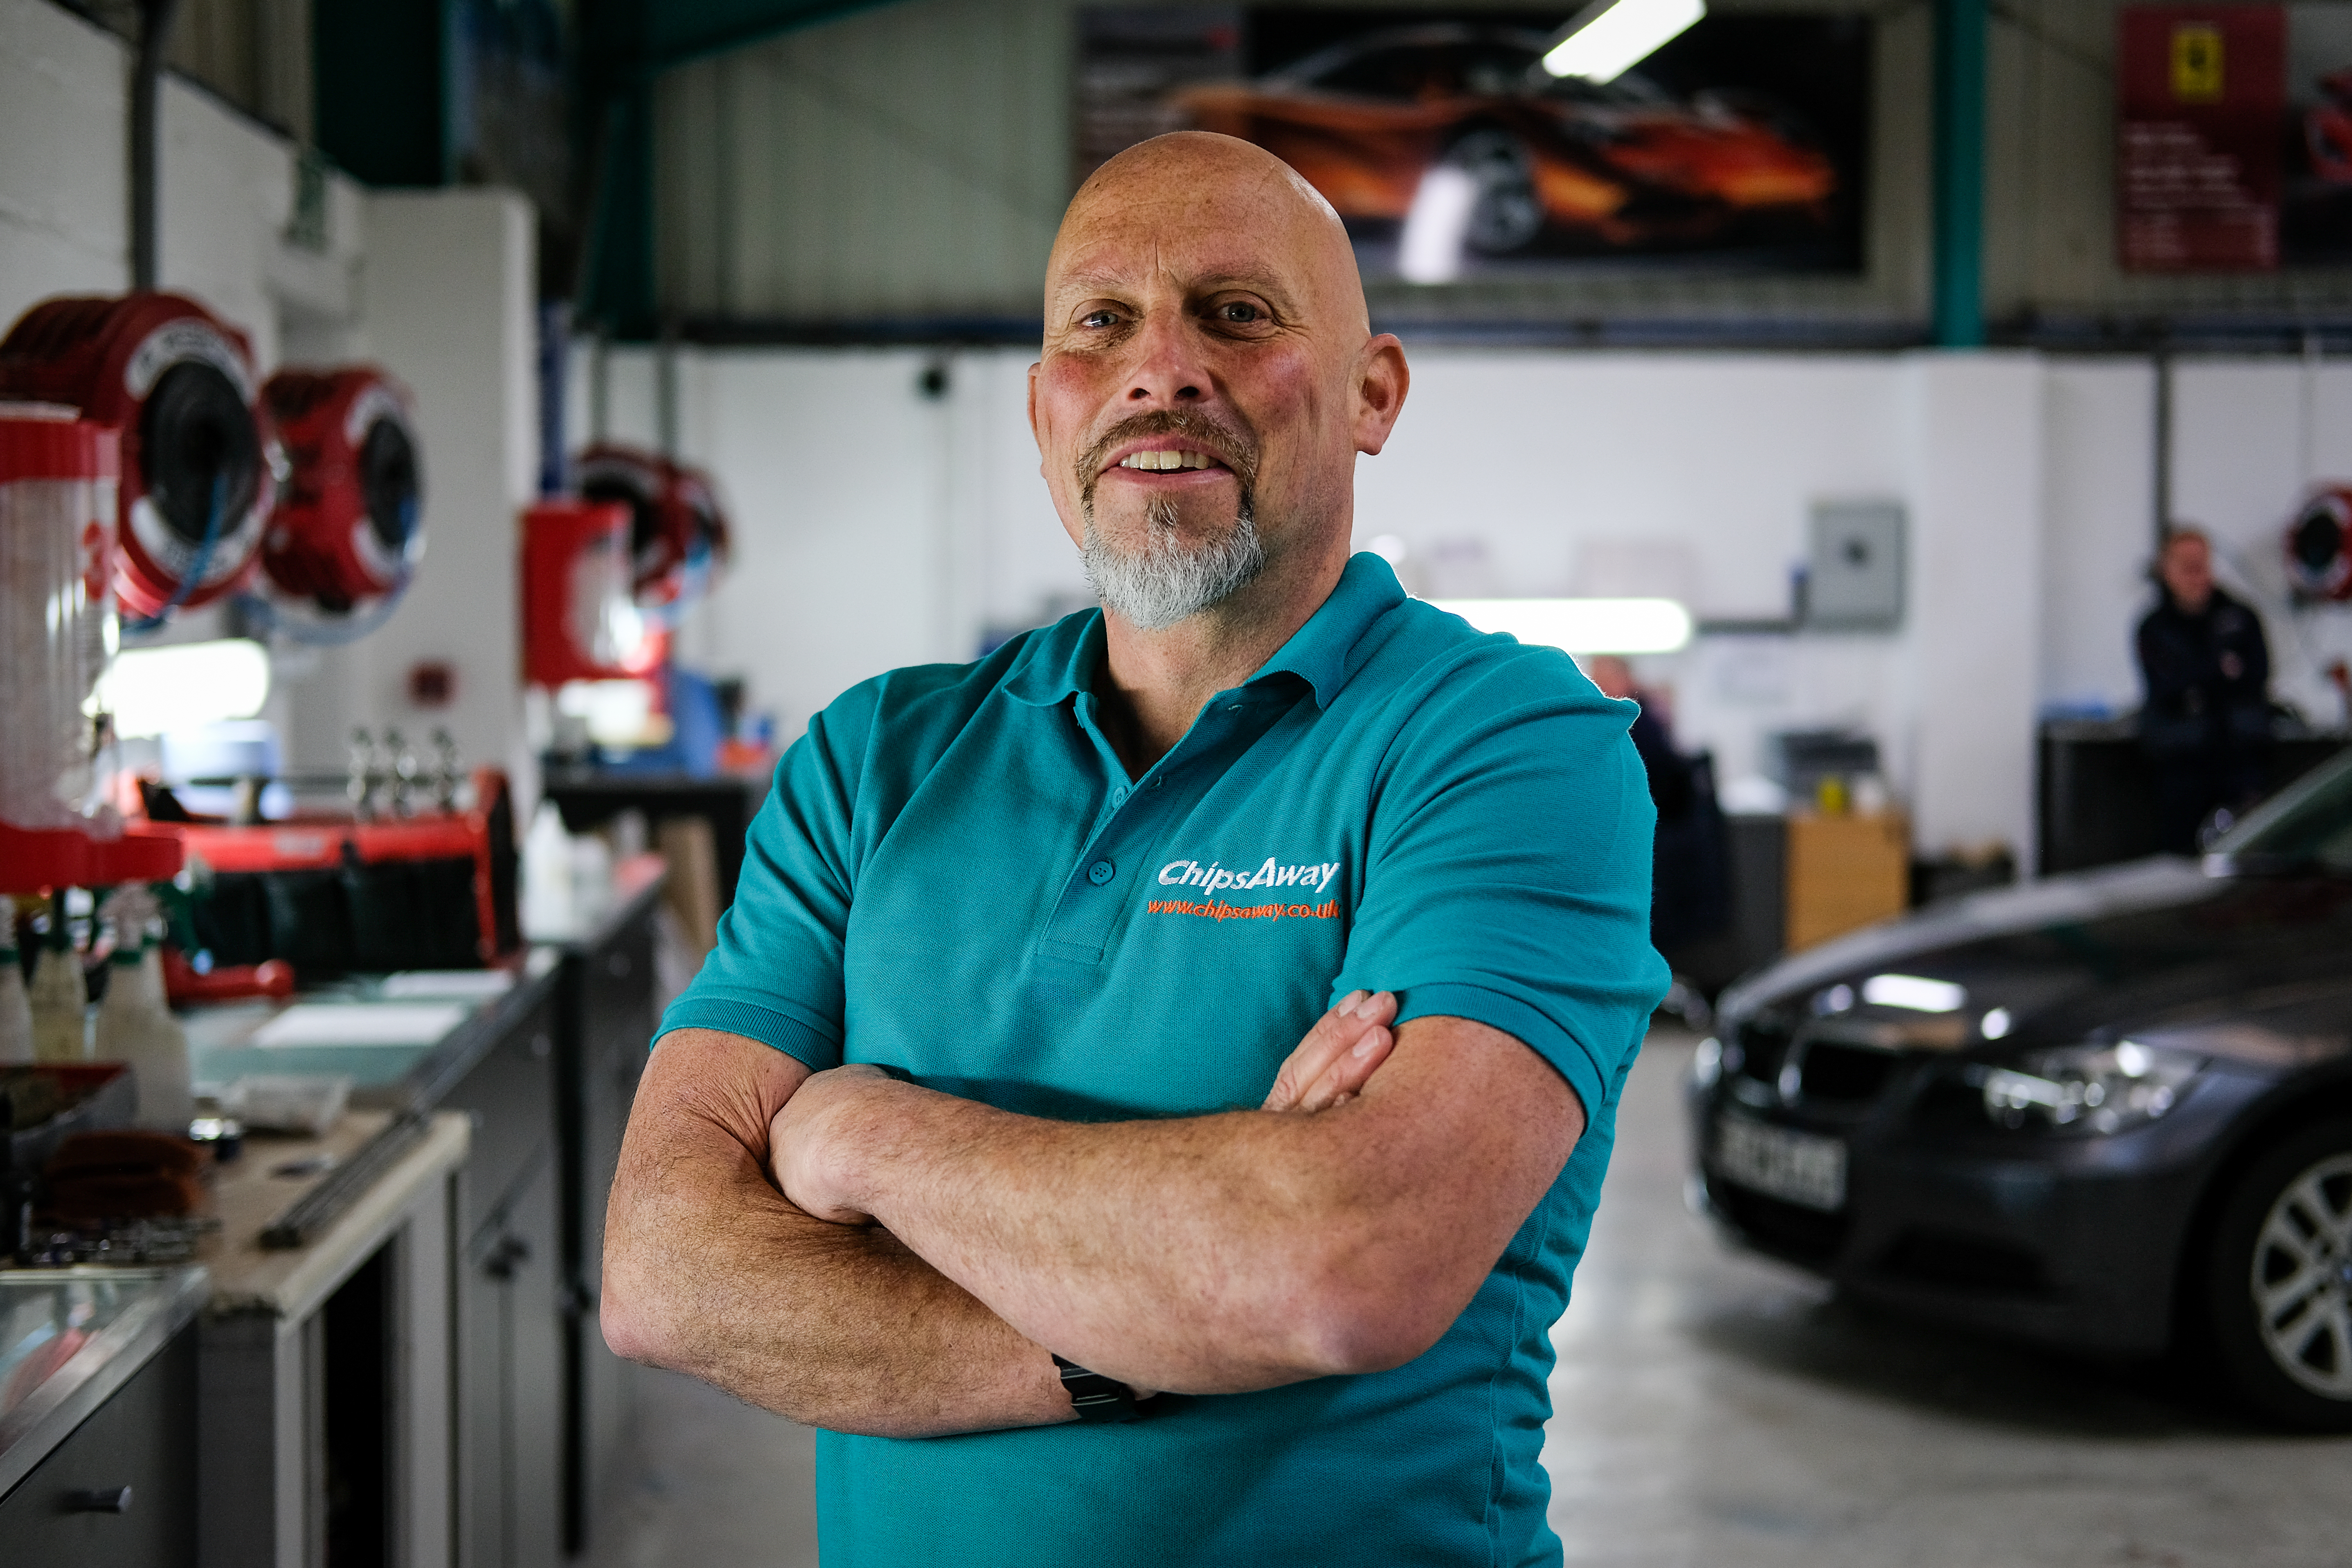 Richard Dexter Chipsaway franchisee standing in car care centre